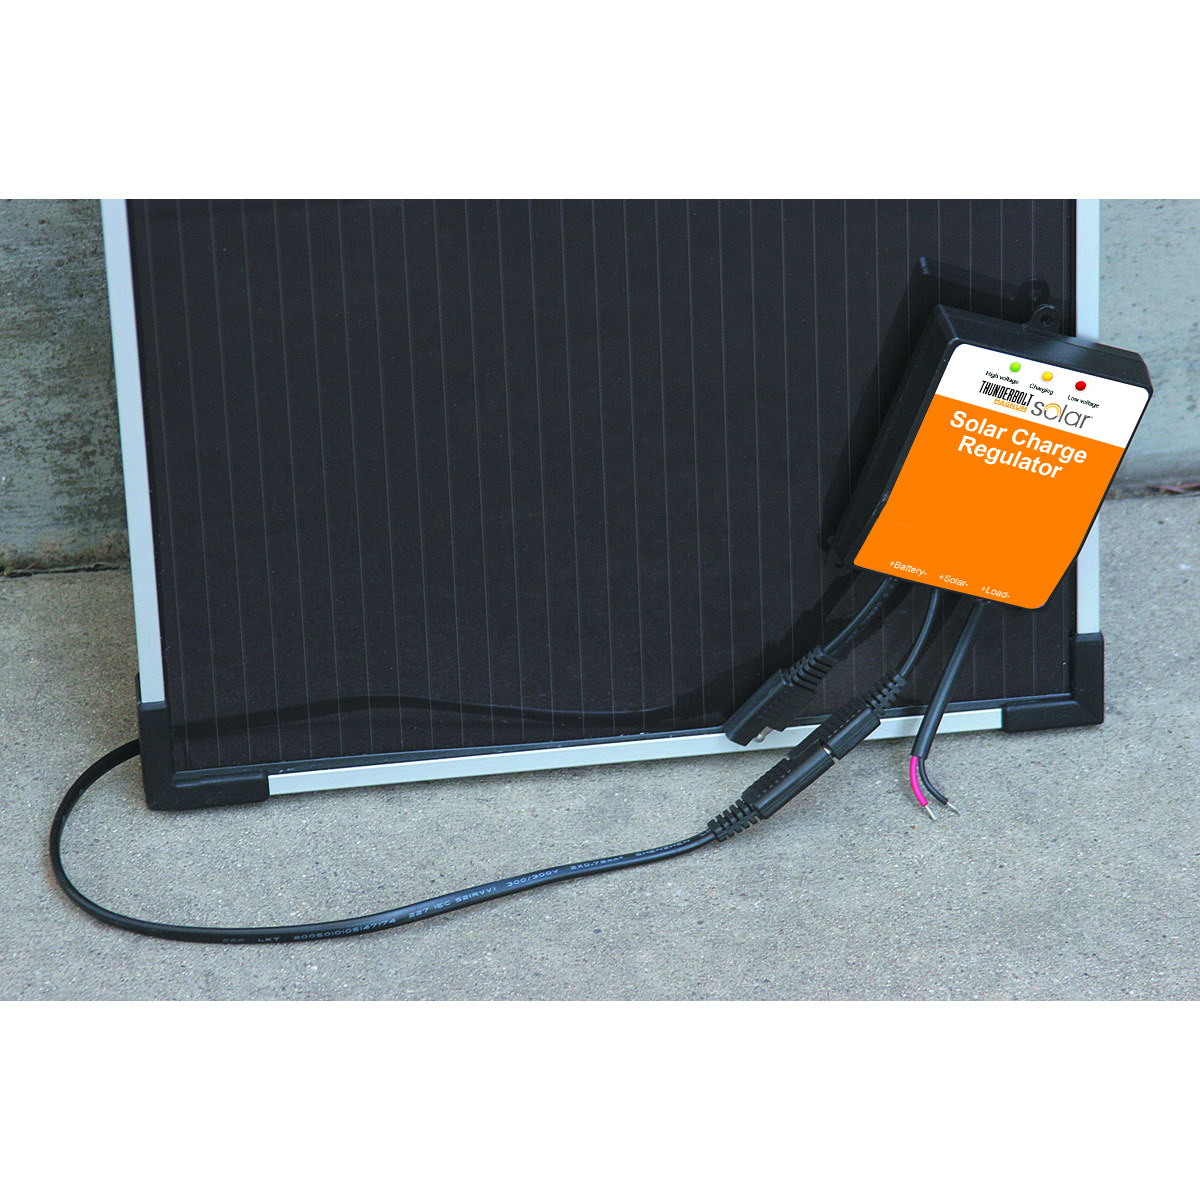 7 Amp Solar Charge Regulator Battery Charger With Overcharge Protection Electronic